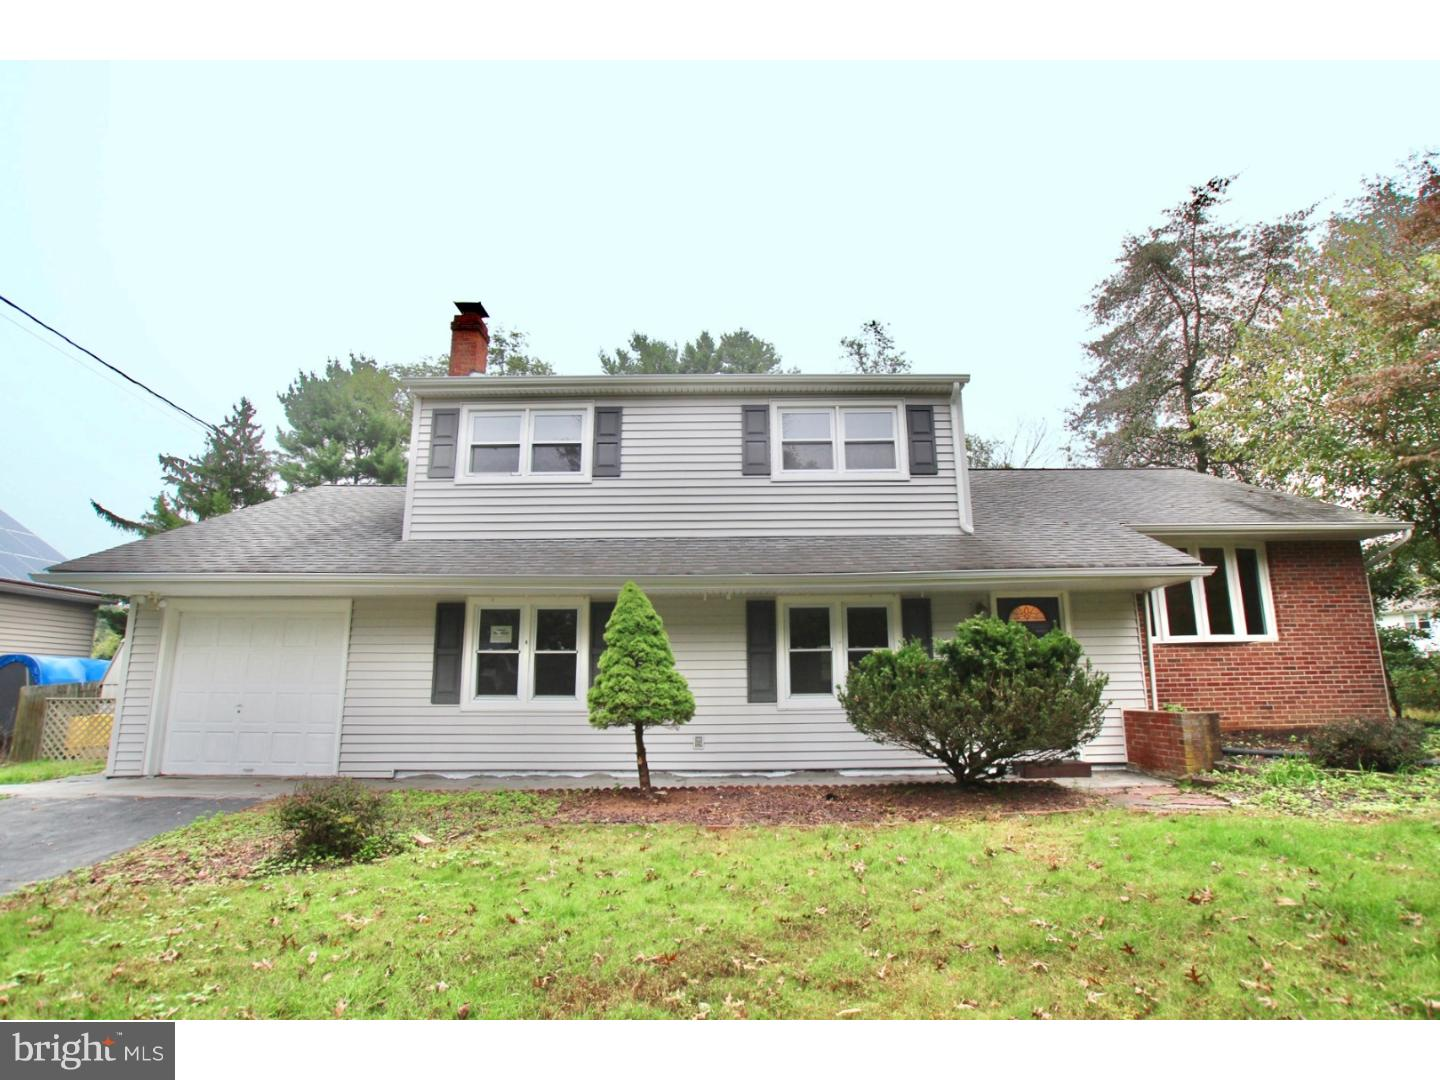 Single Family Home for Sale at 9 WINDSOR Drive West Windsor, New Jersey 08550 United StatesMunicipality: West Windsor Twp, West Windsor Twp